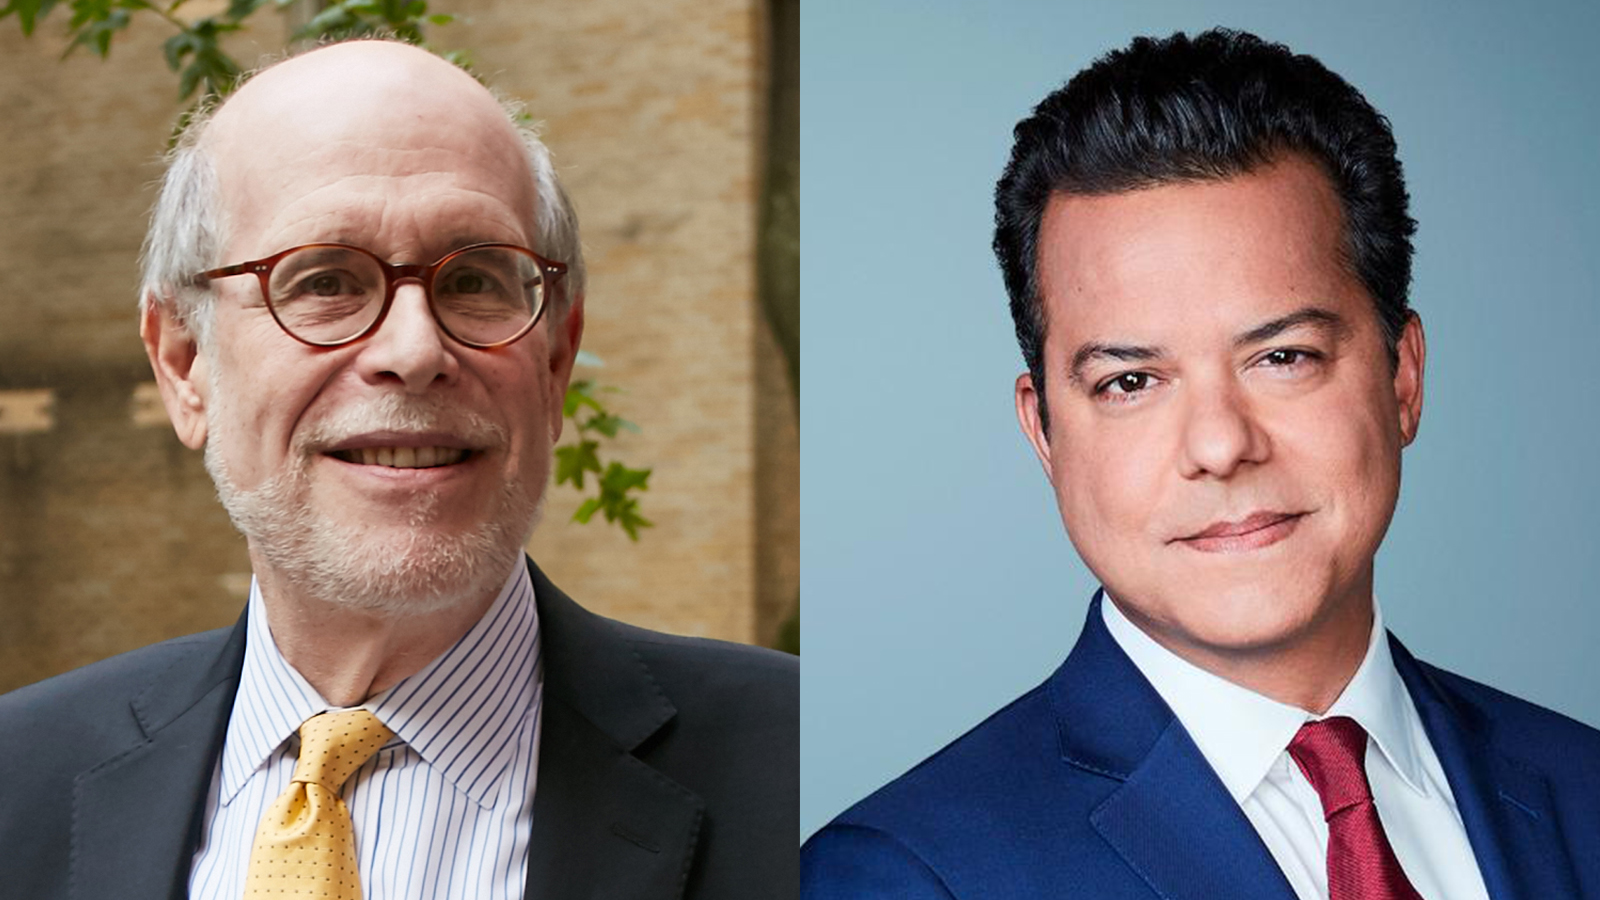 Harold Holzer and John Avlon